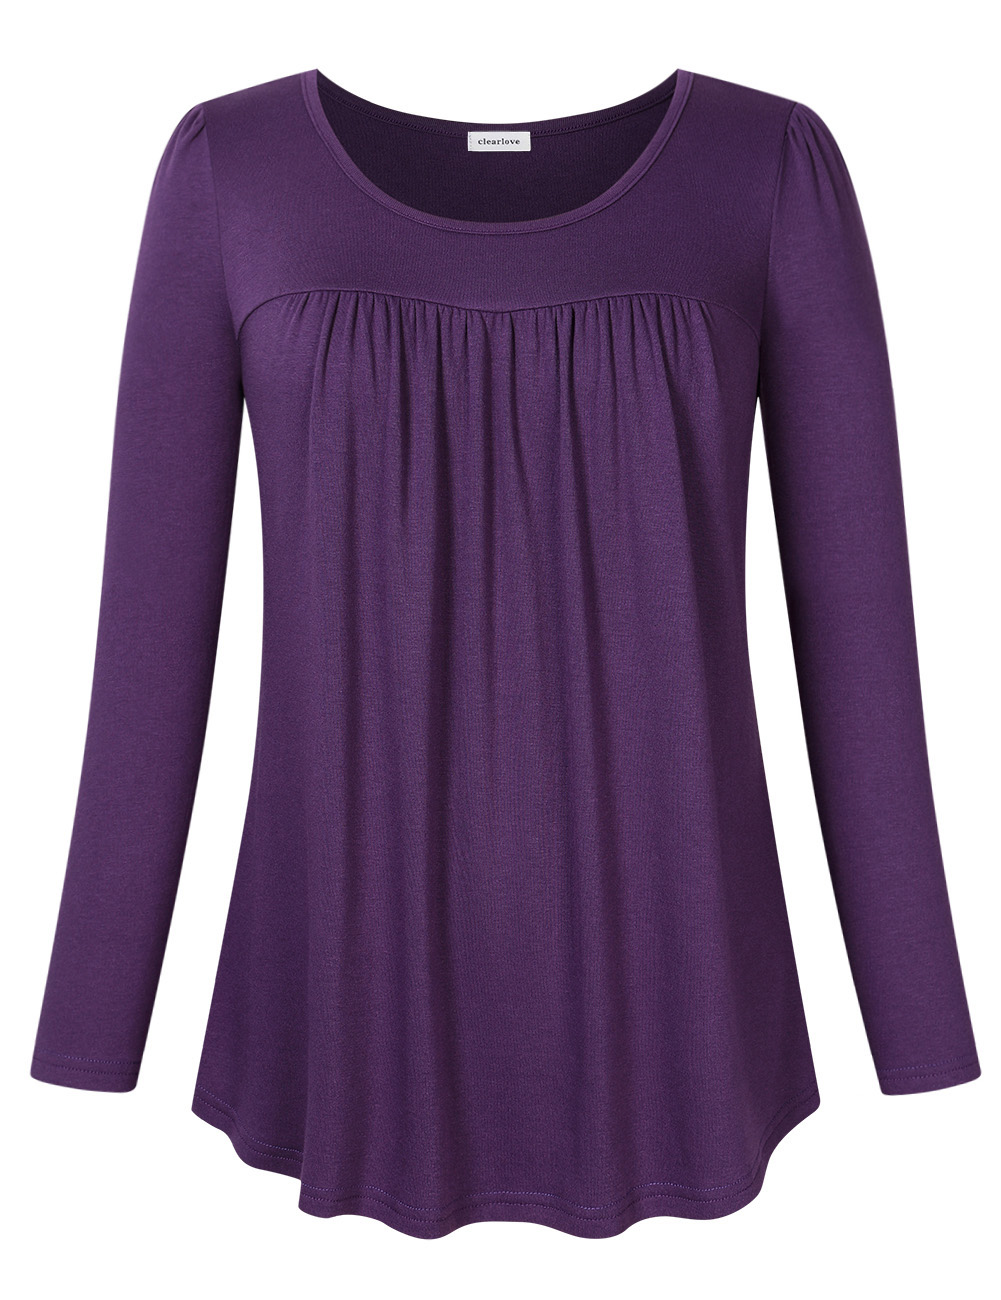 Clearlove Women Scoop Neck Pleated Top Blouse Long Sleeve Tunic Shirt